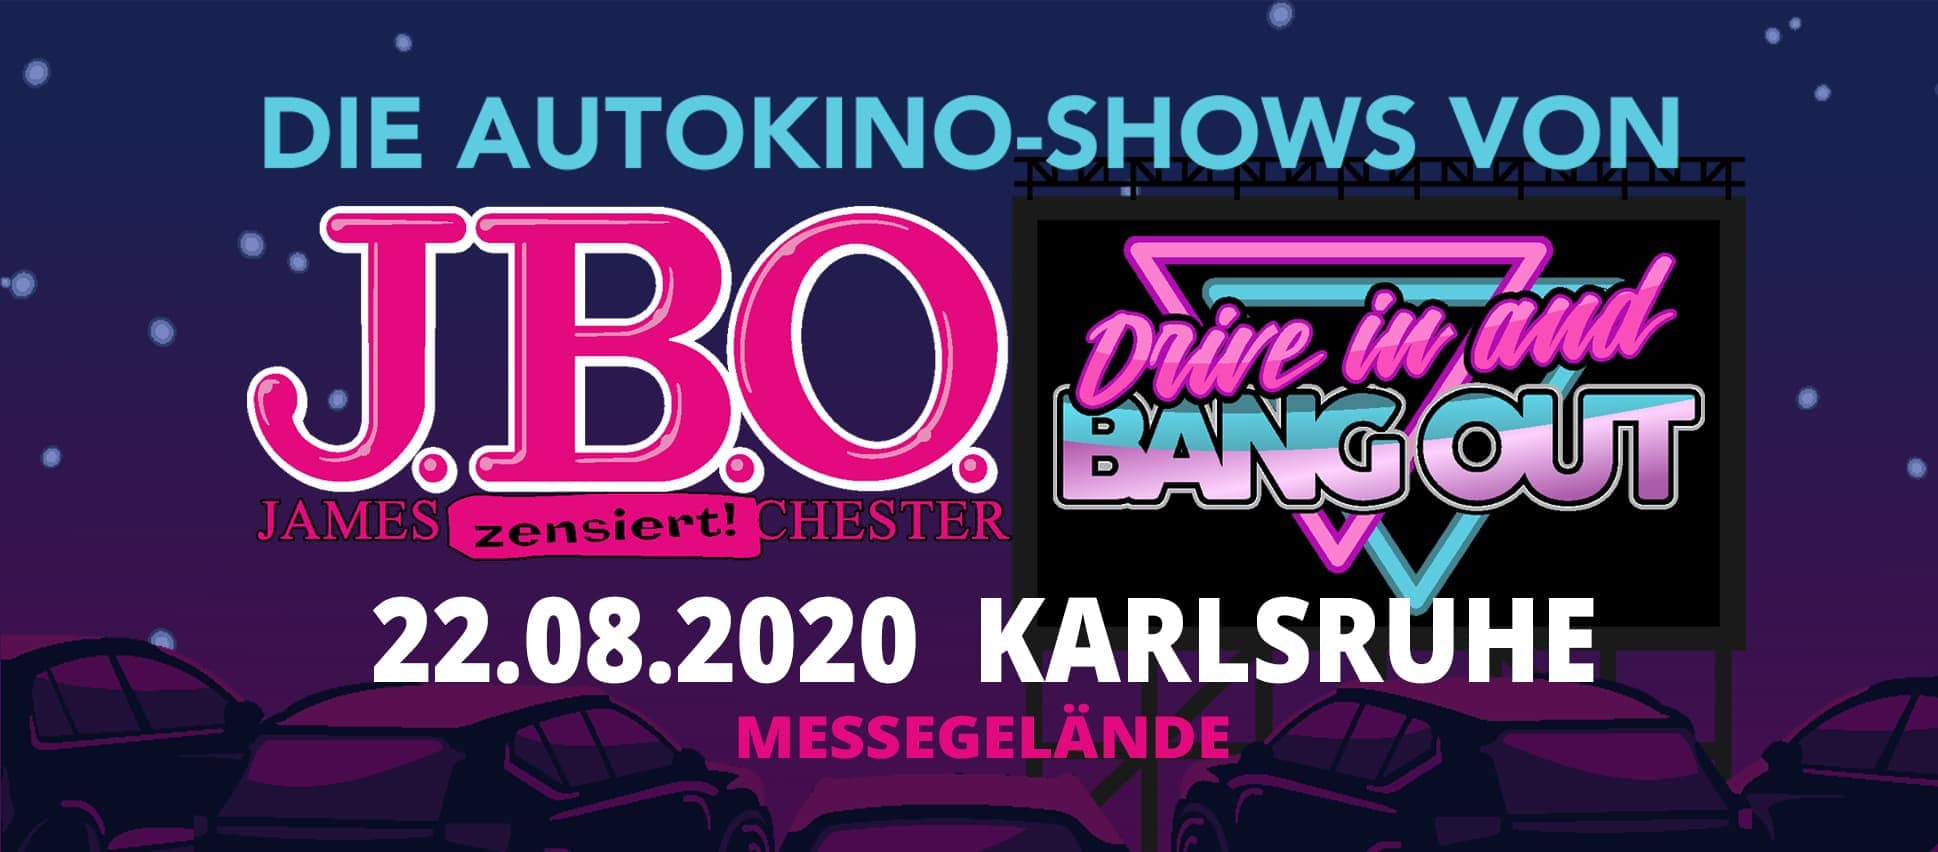 Drive in and Bang out: Sonntag, 30. August 2020 - Drive-In Kulturbühne an der Messe Karlsruhe, Rheinstetten